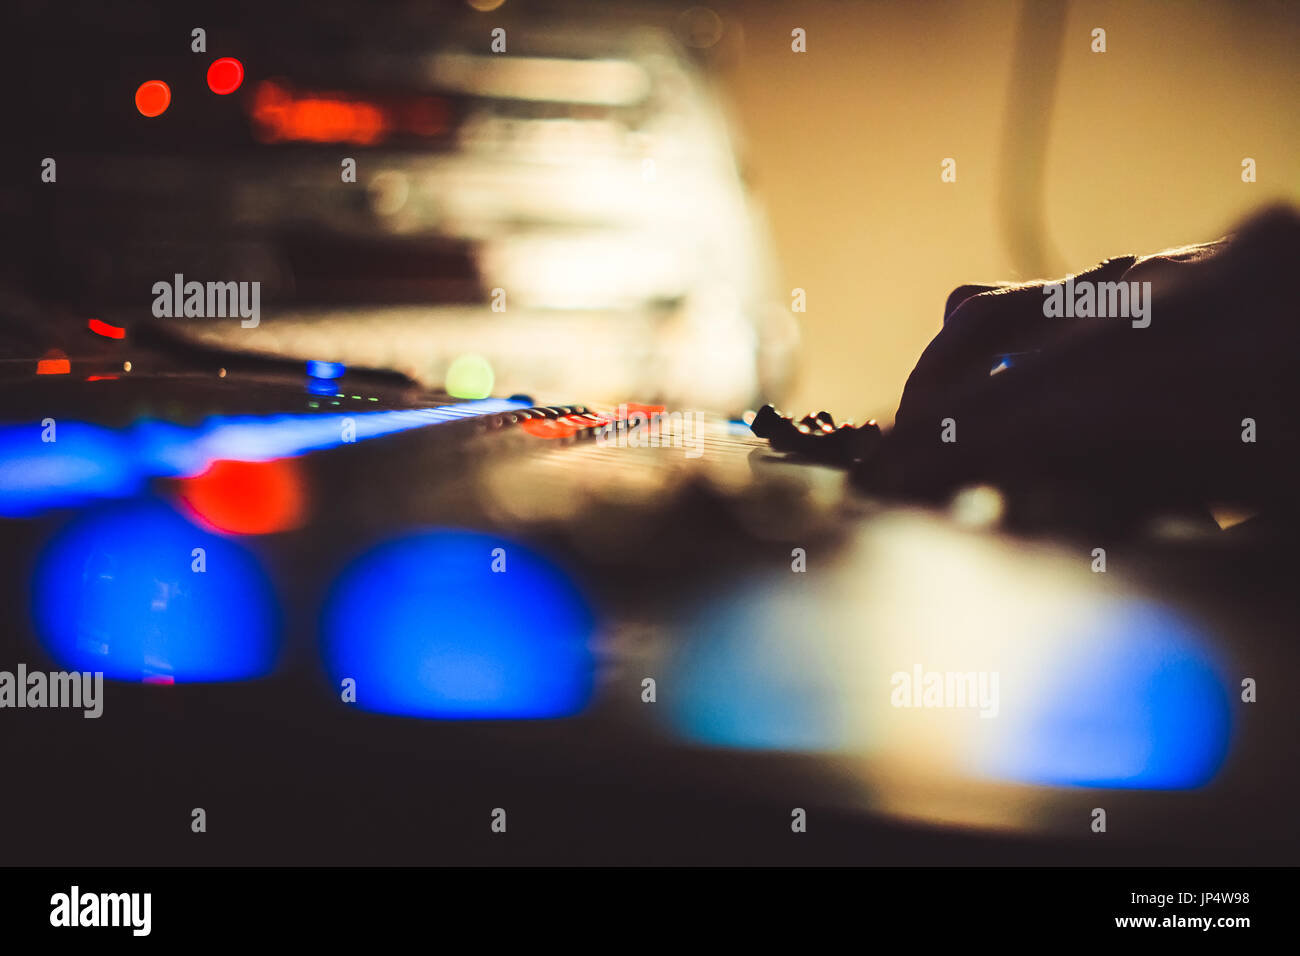 The hands of the sound engineer on the mixing console - Stock Image